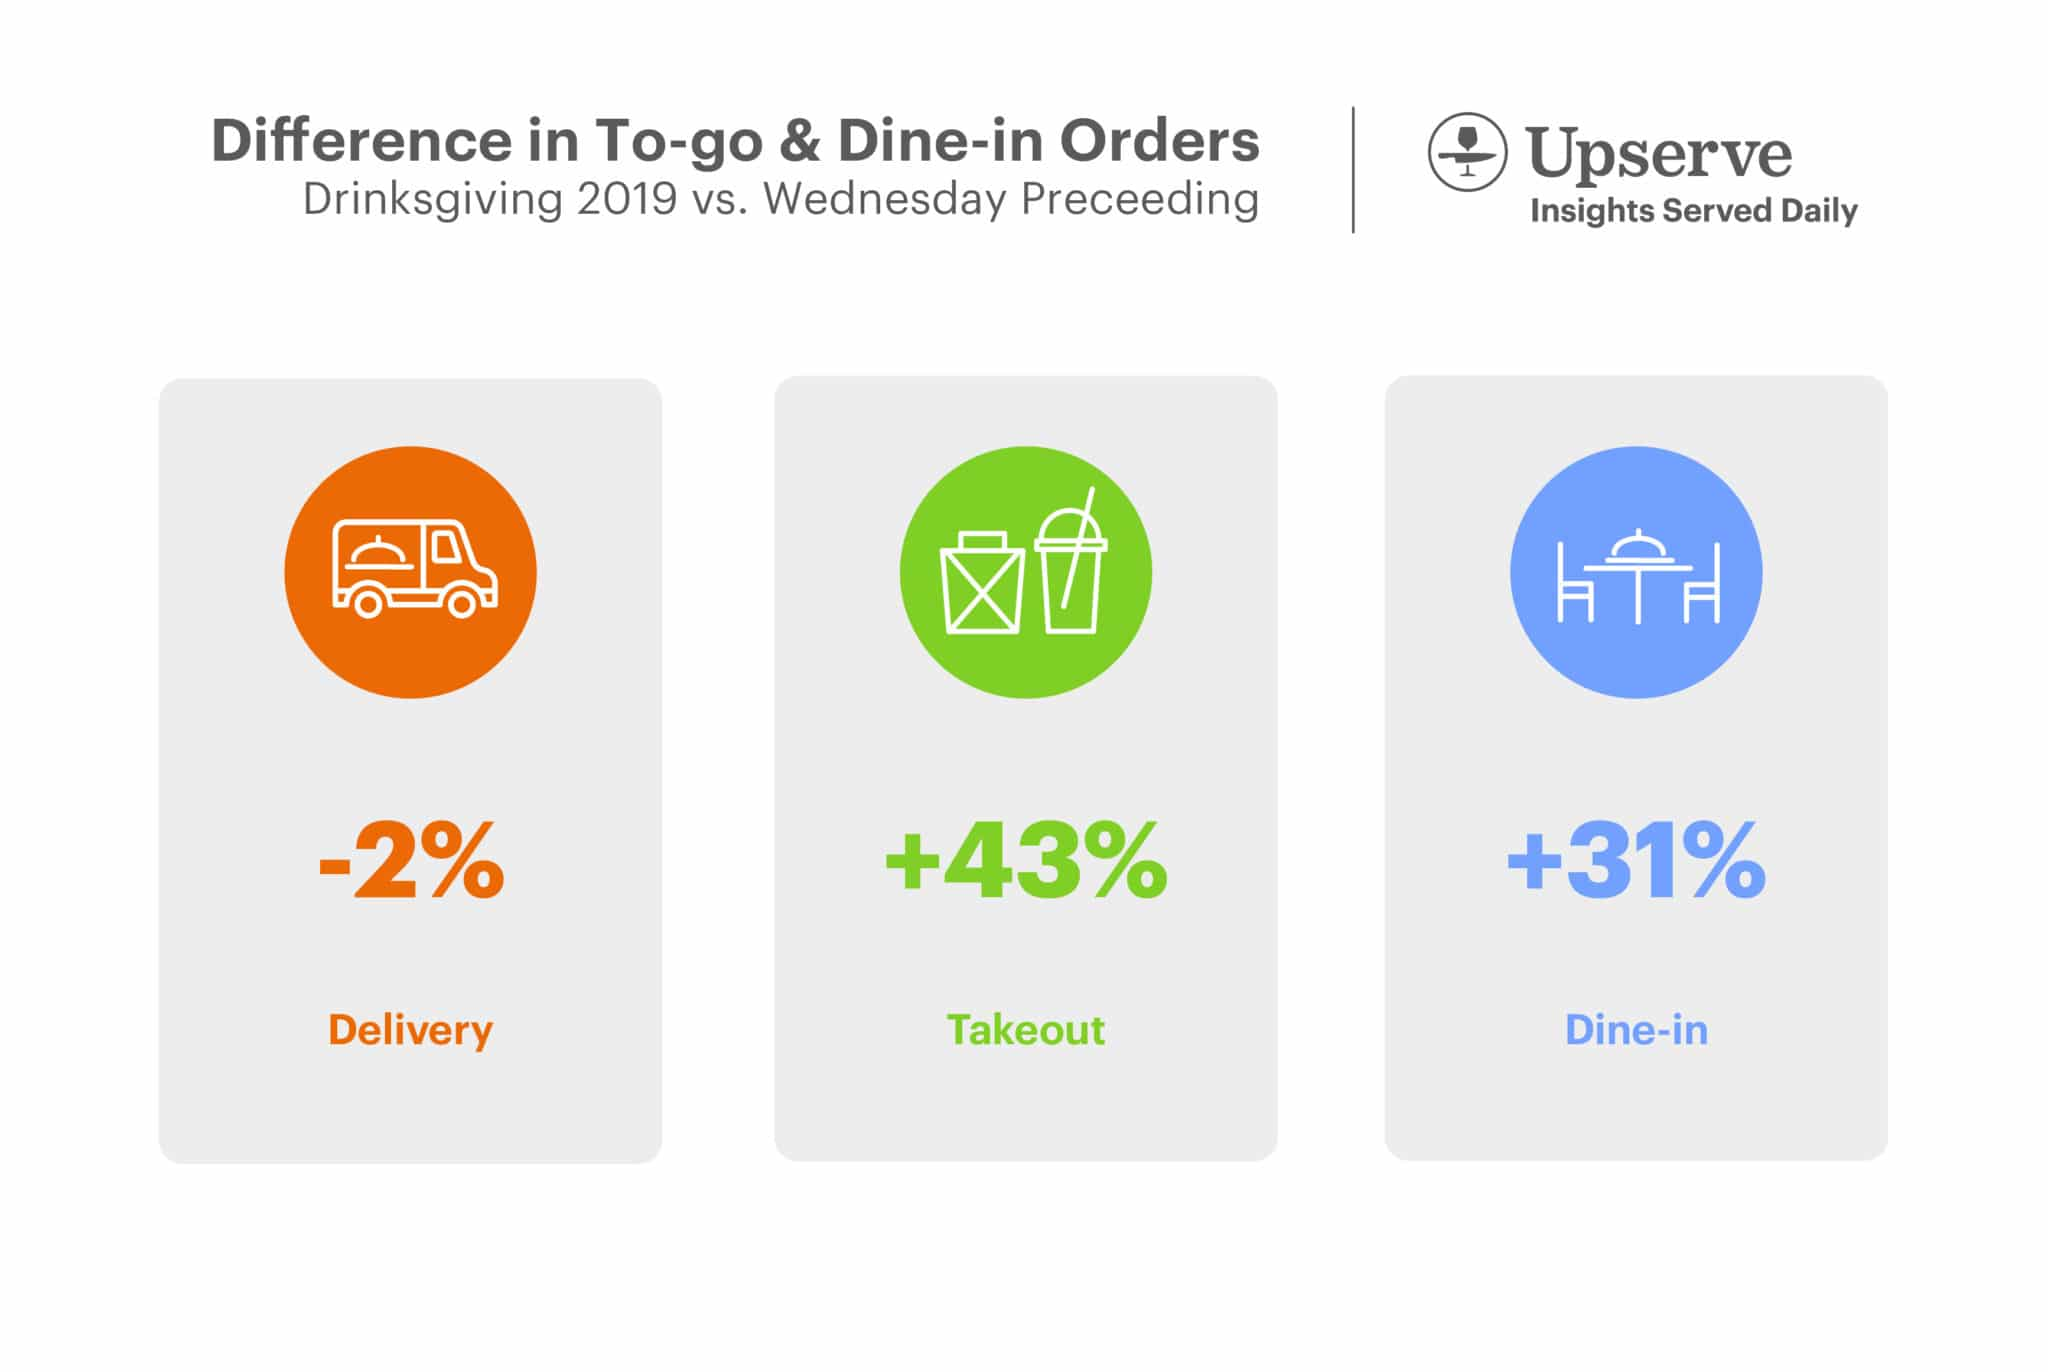 Percent Difference in To-go and Dine-in Orders: Drinksgiving